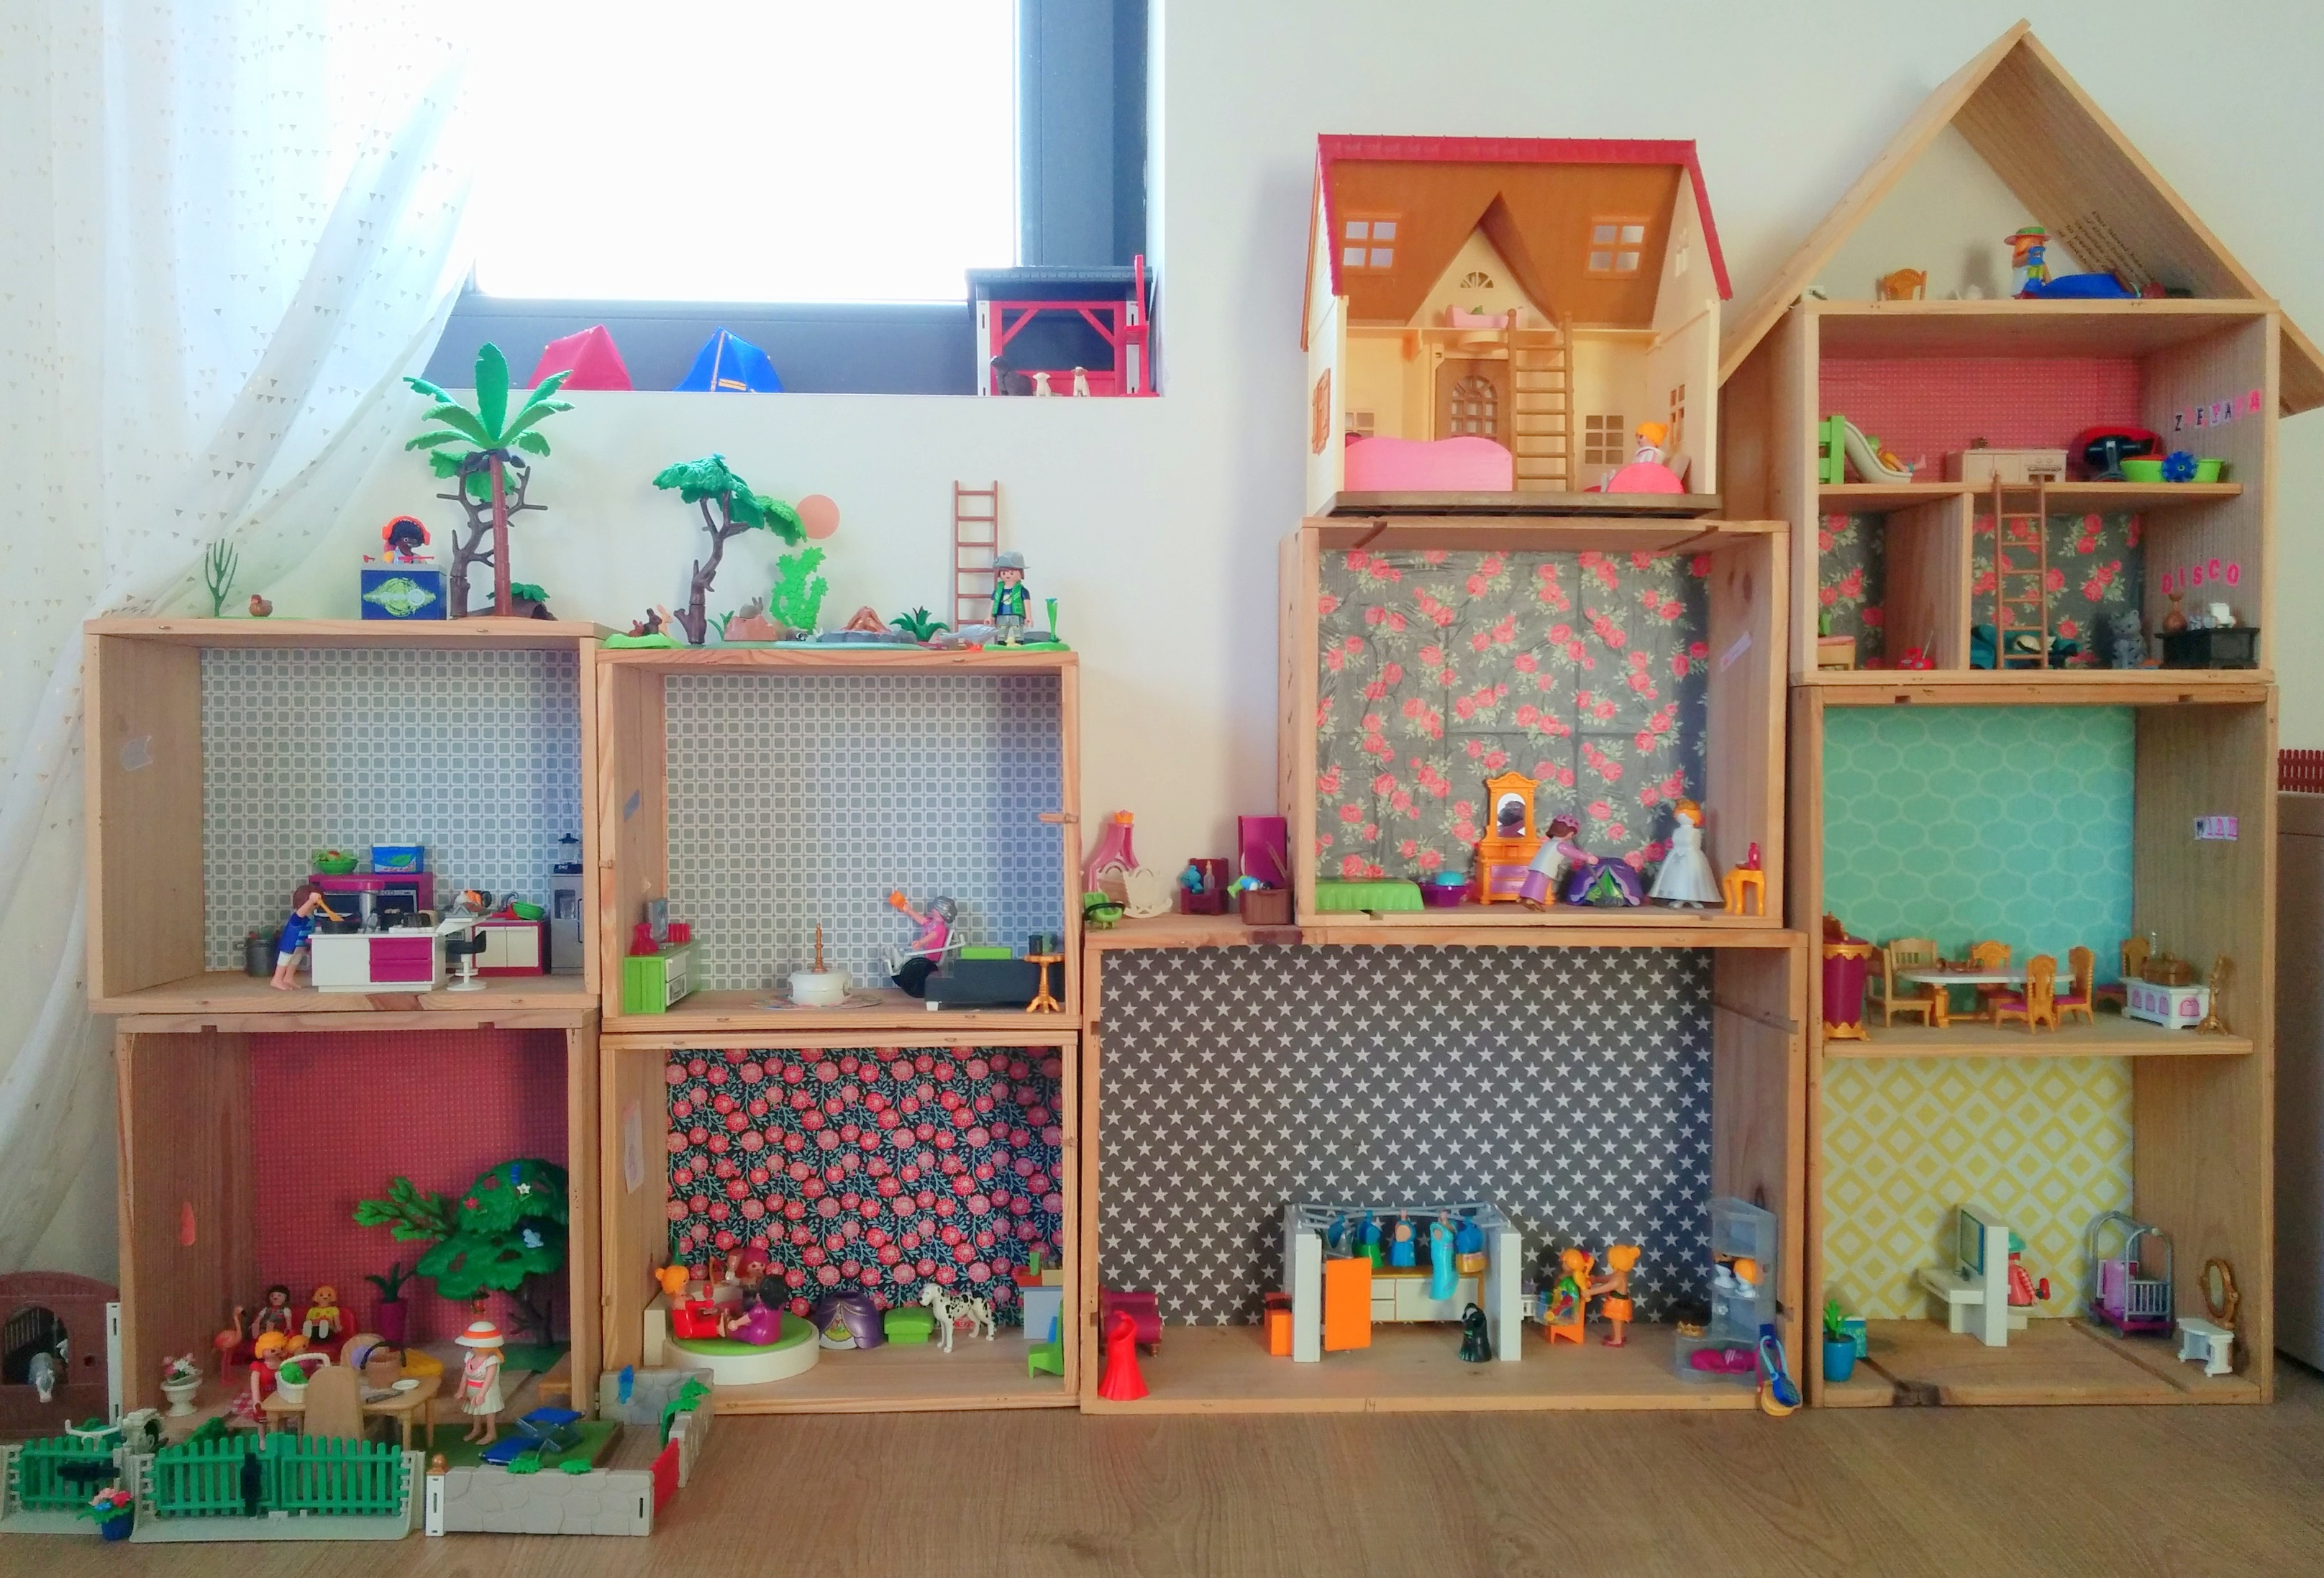 diy une maison pour playmobil la vie en plus joli. Black Bedroom Furniture Sets. Home Design Ideas